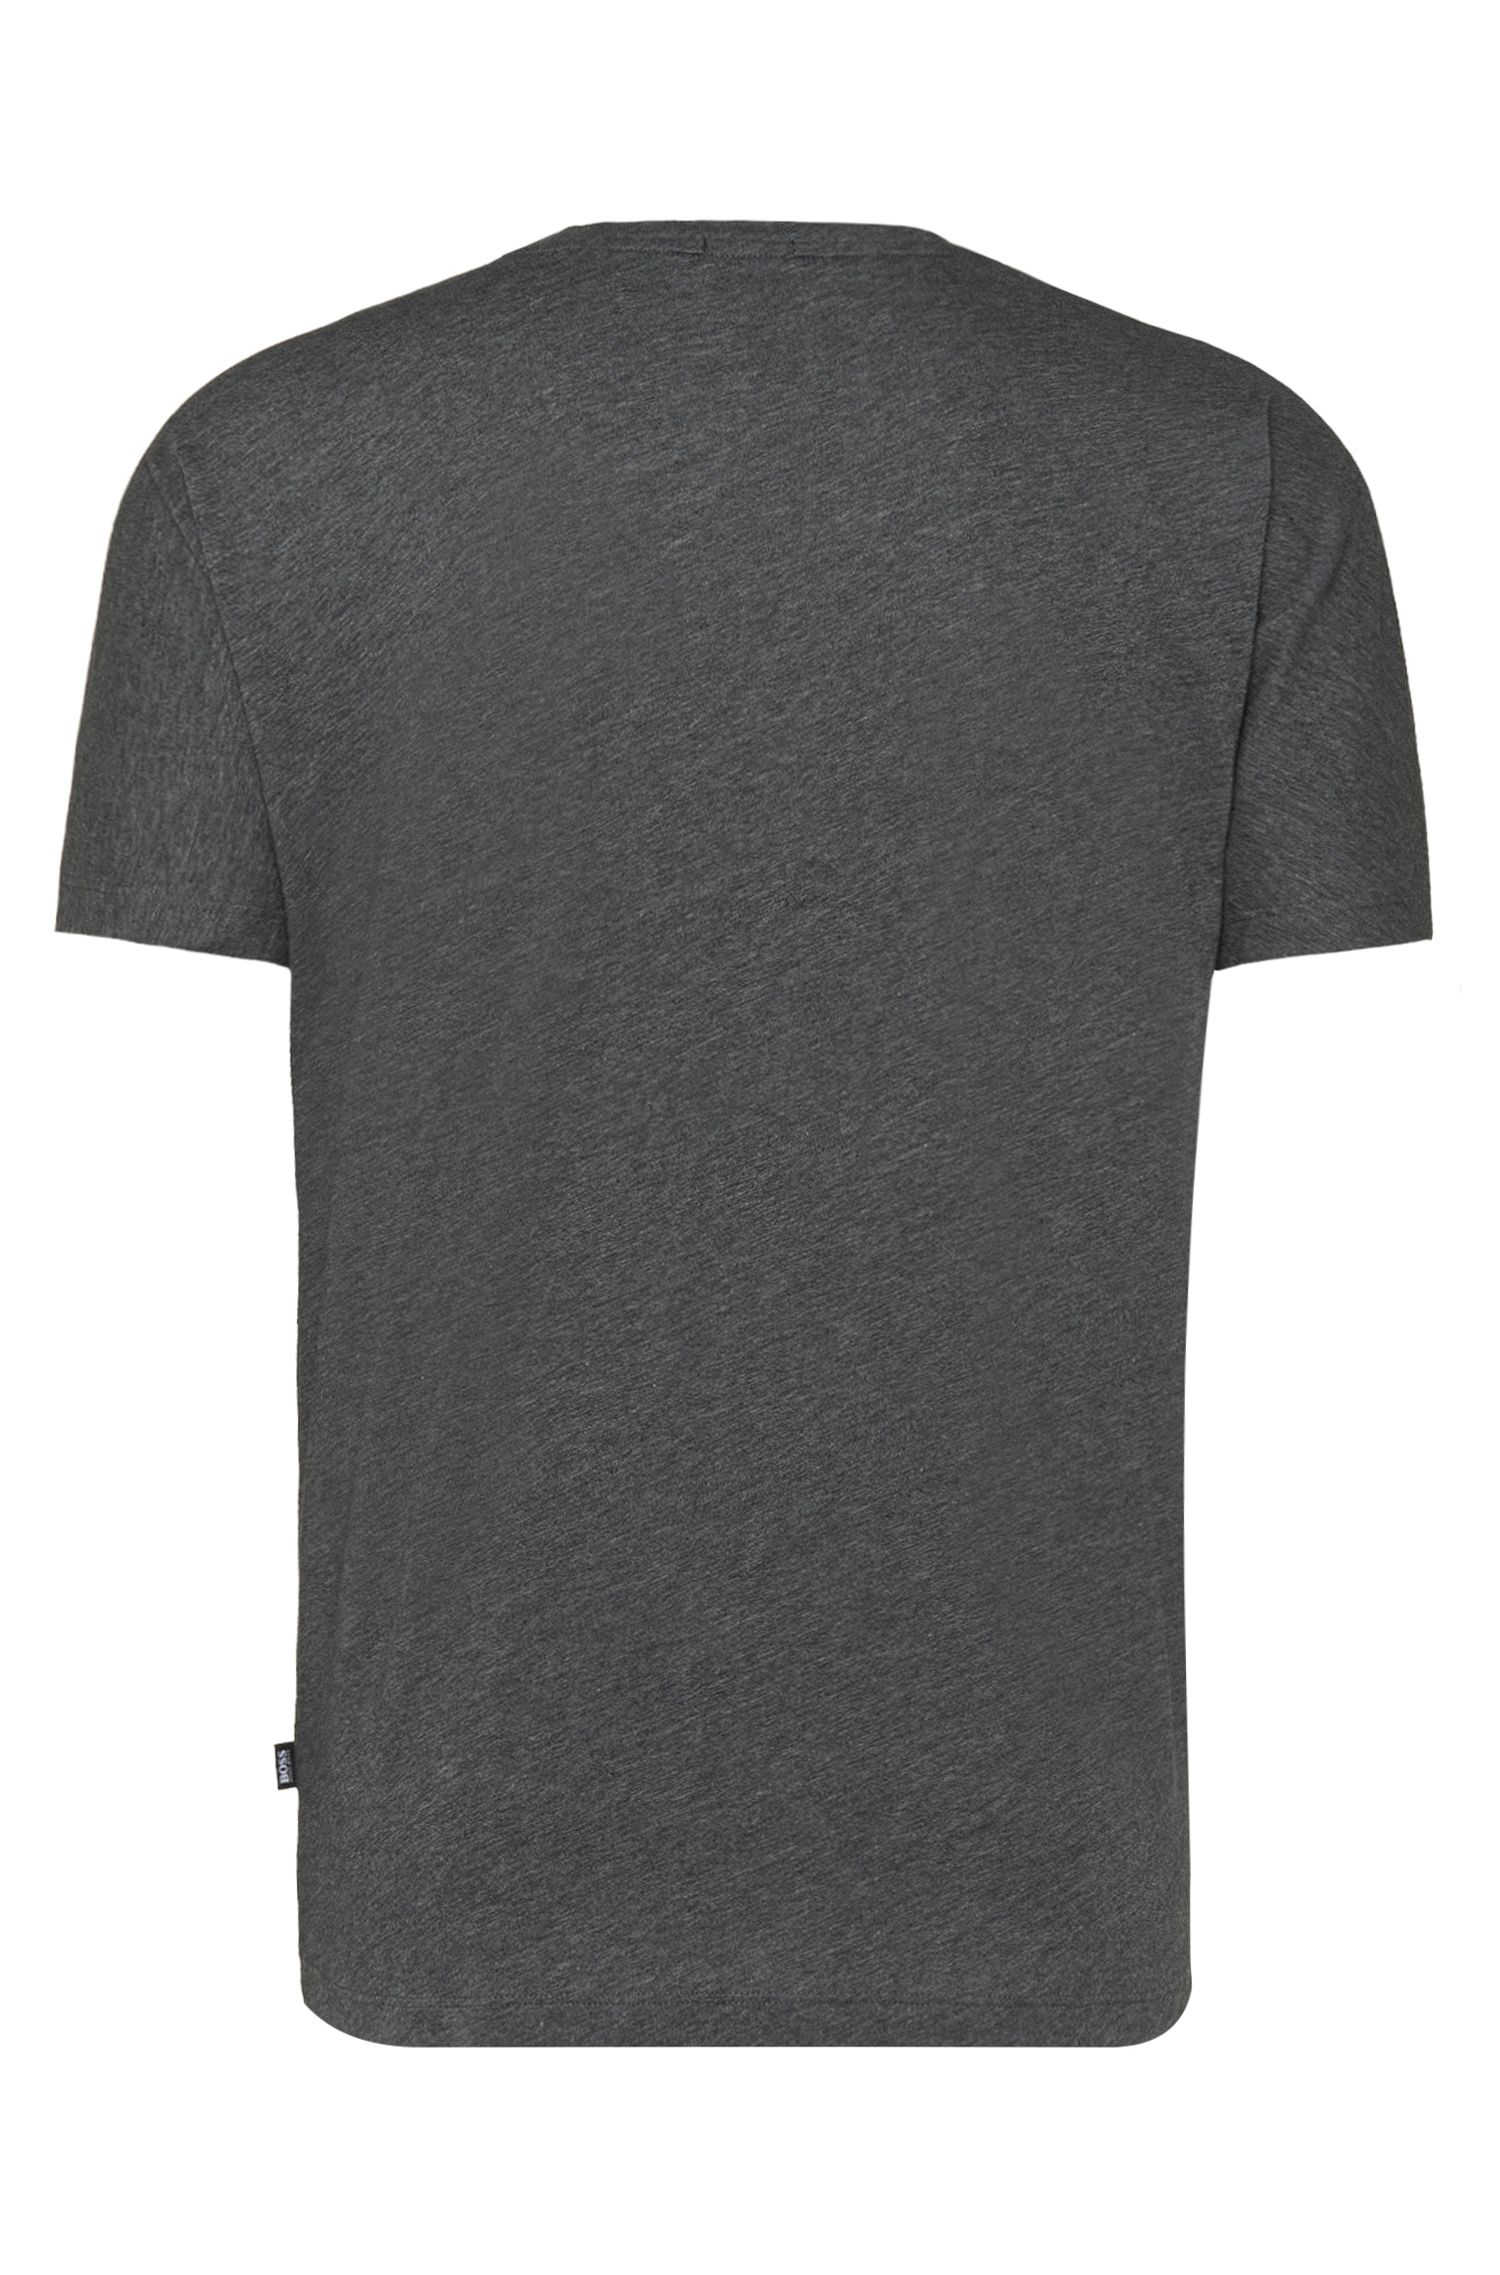 T-shirt Regular Fit en coton à motif : « Tiburt 14 »